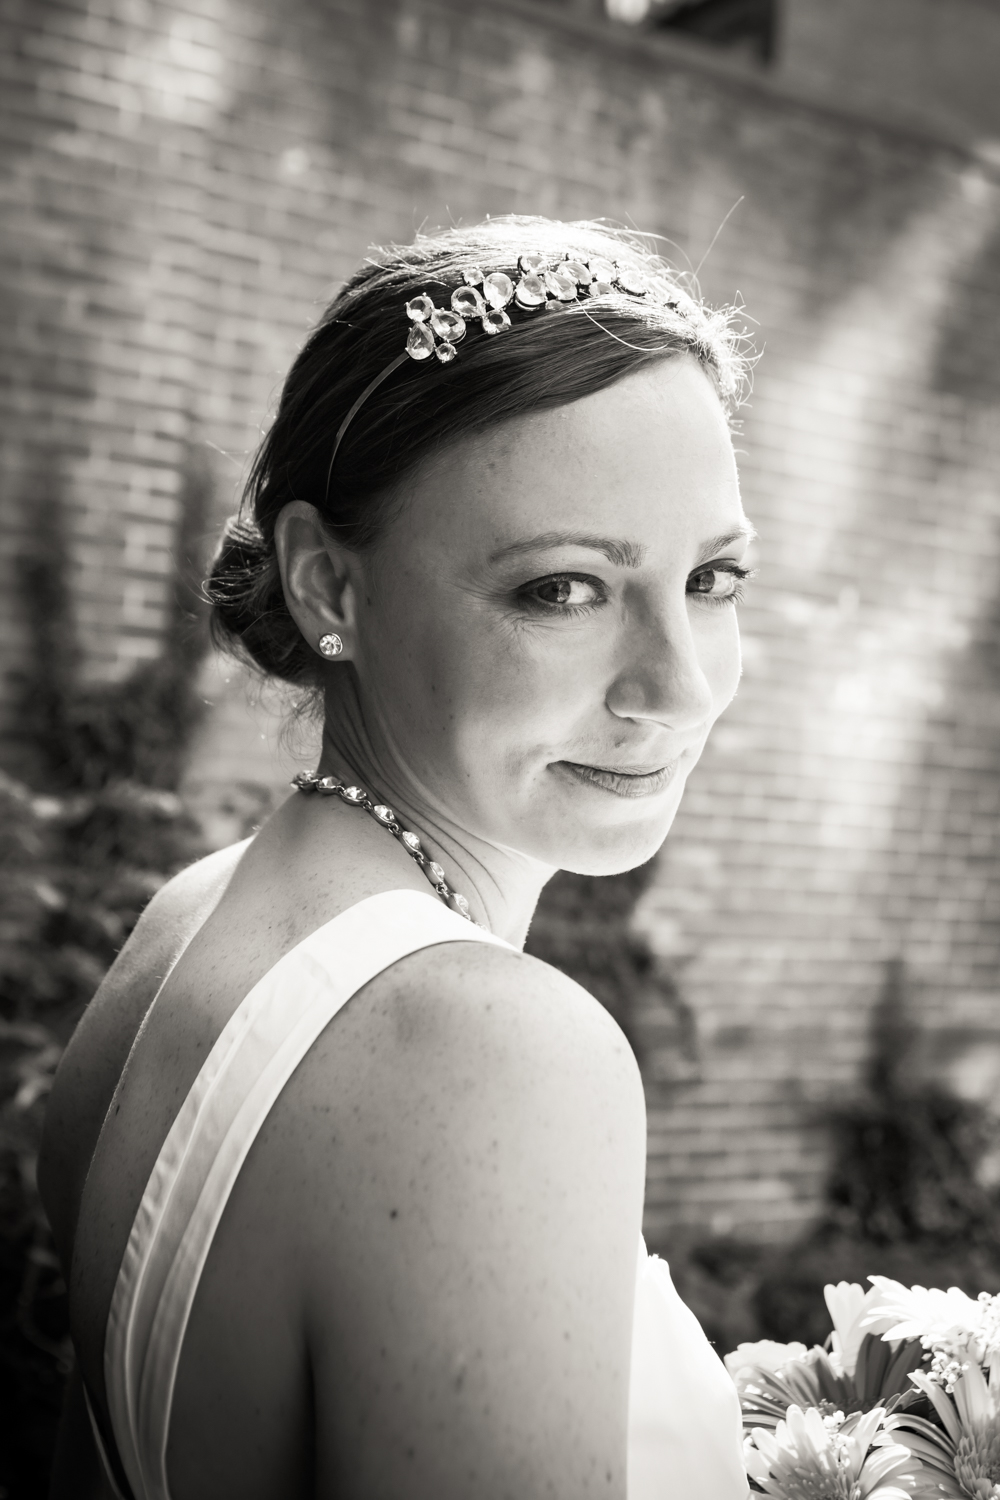 Black and white portrait of bride with hair in bun